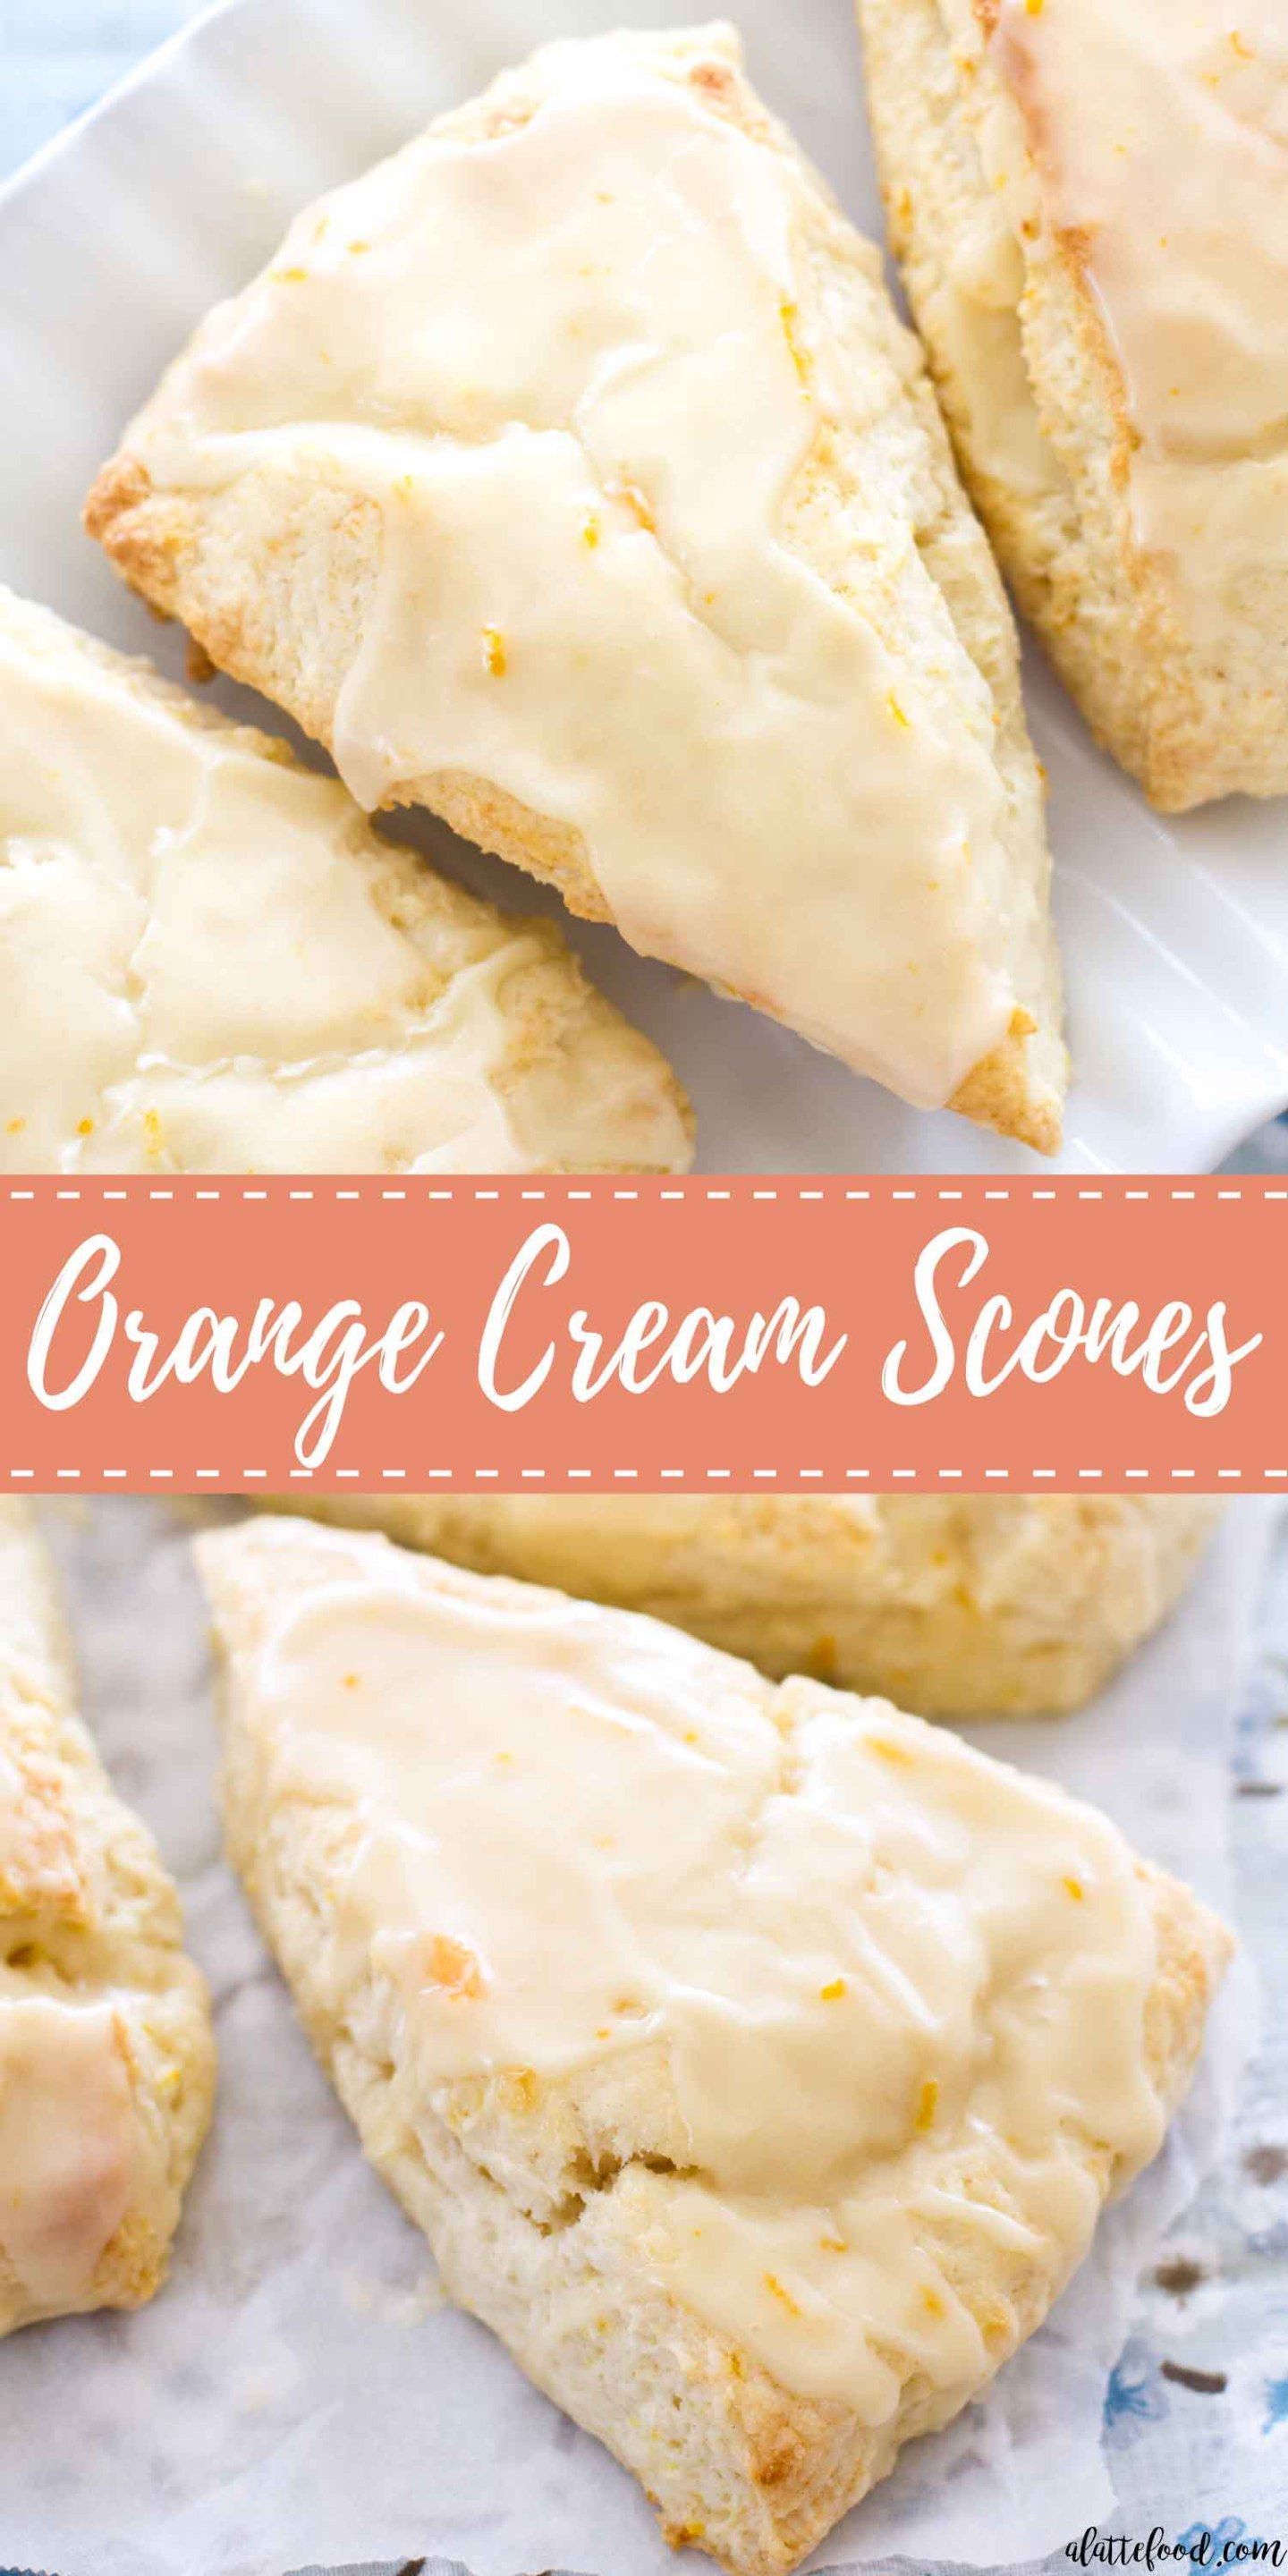 These homemade Orange Cream Scones are one of my favorite summer dessert recipes! These tender cream scones are packed with orange flavor and topped with a sweet homemade orange glaze, making them a perfect breakfast, brunch, or dessert! homemade Orange Cream Scones are one of my favorite summer dessert recipes! These tender cream scones are packed with orange flavor and topped with a sweet homemade orange glaze, making them a perfect breakfast, brunch, or dessert!